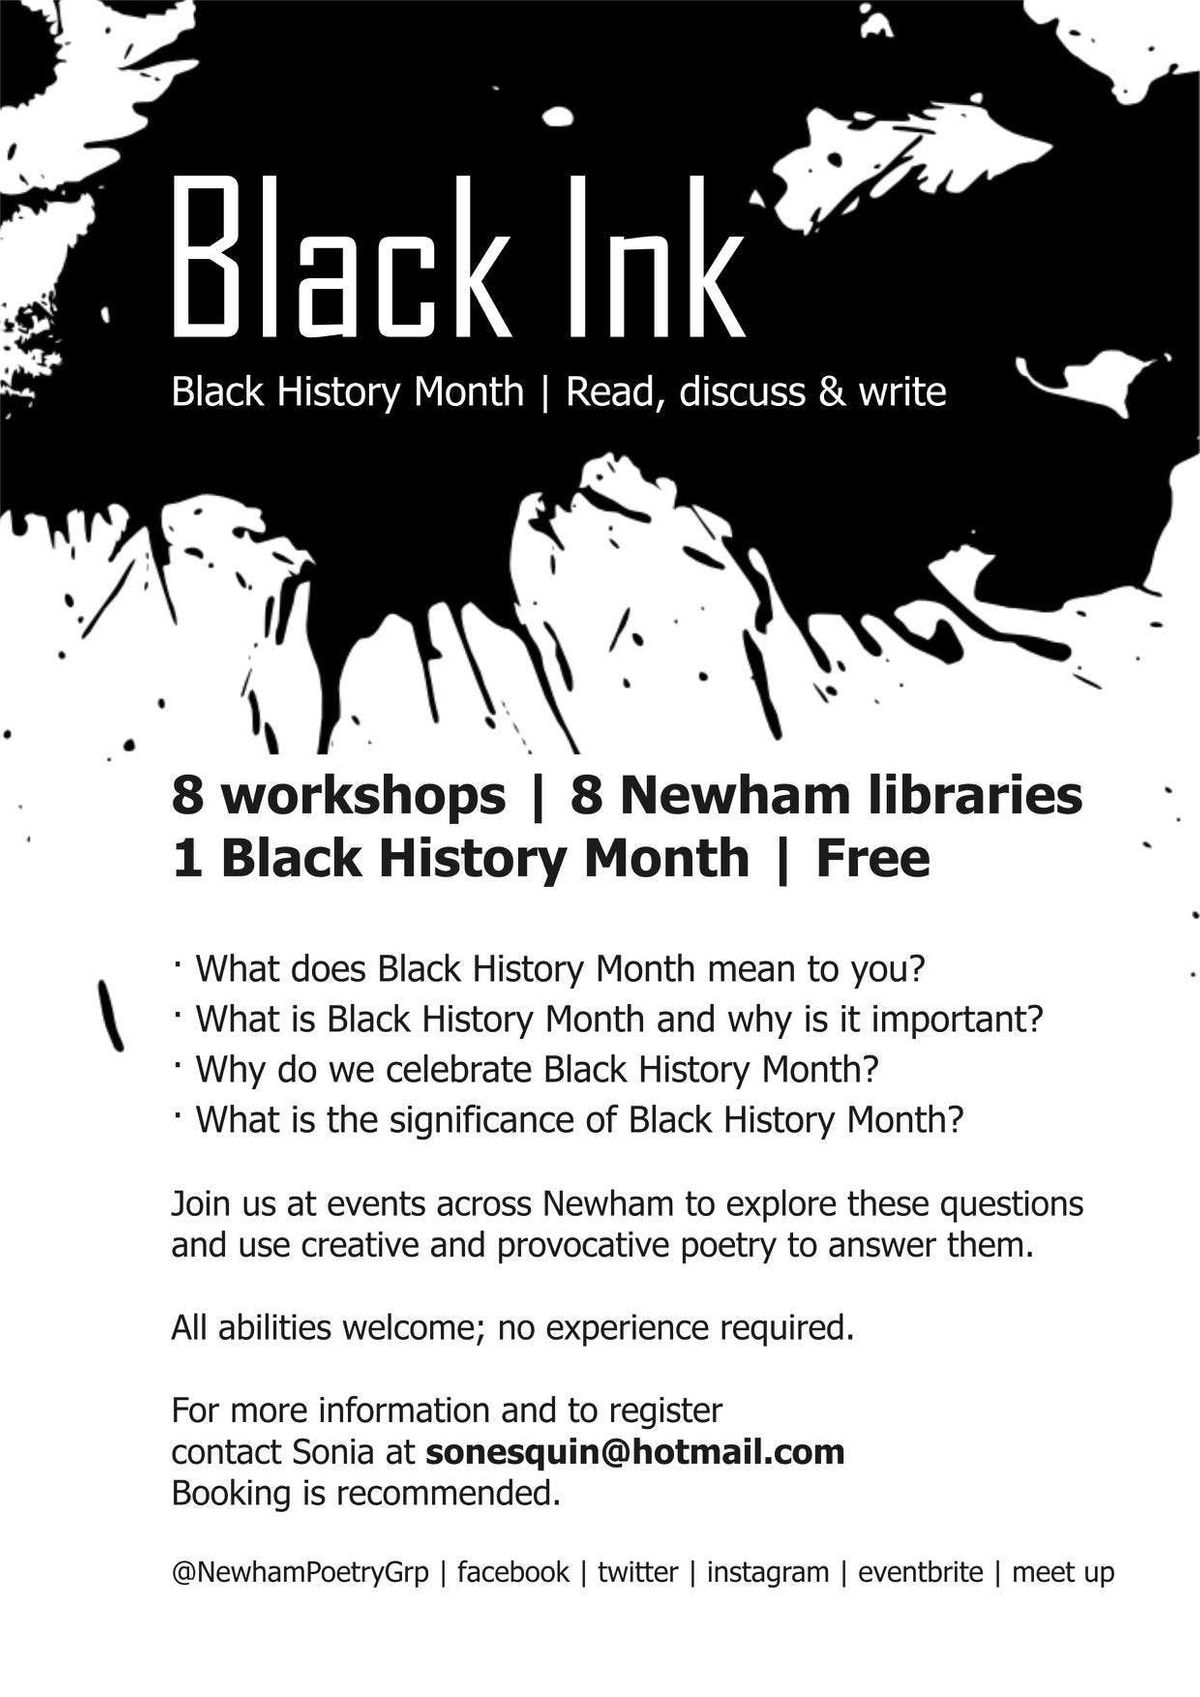 Black Ink - Celebration of Black History Month